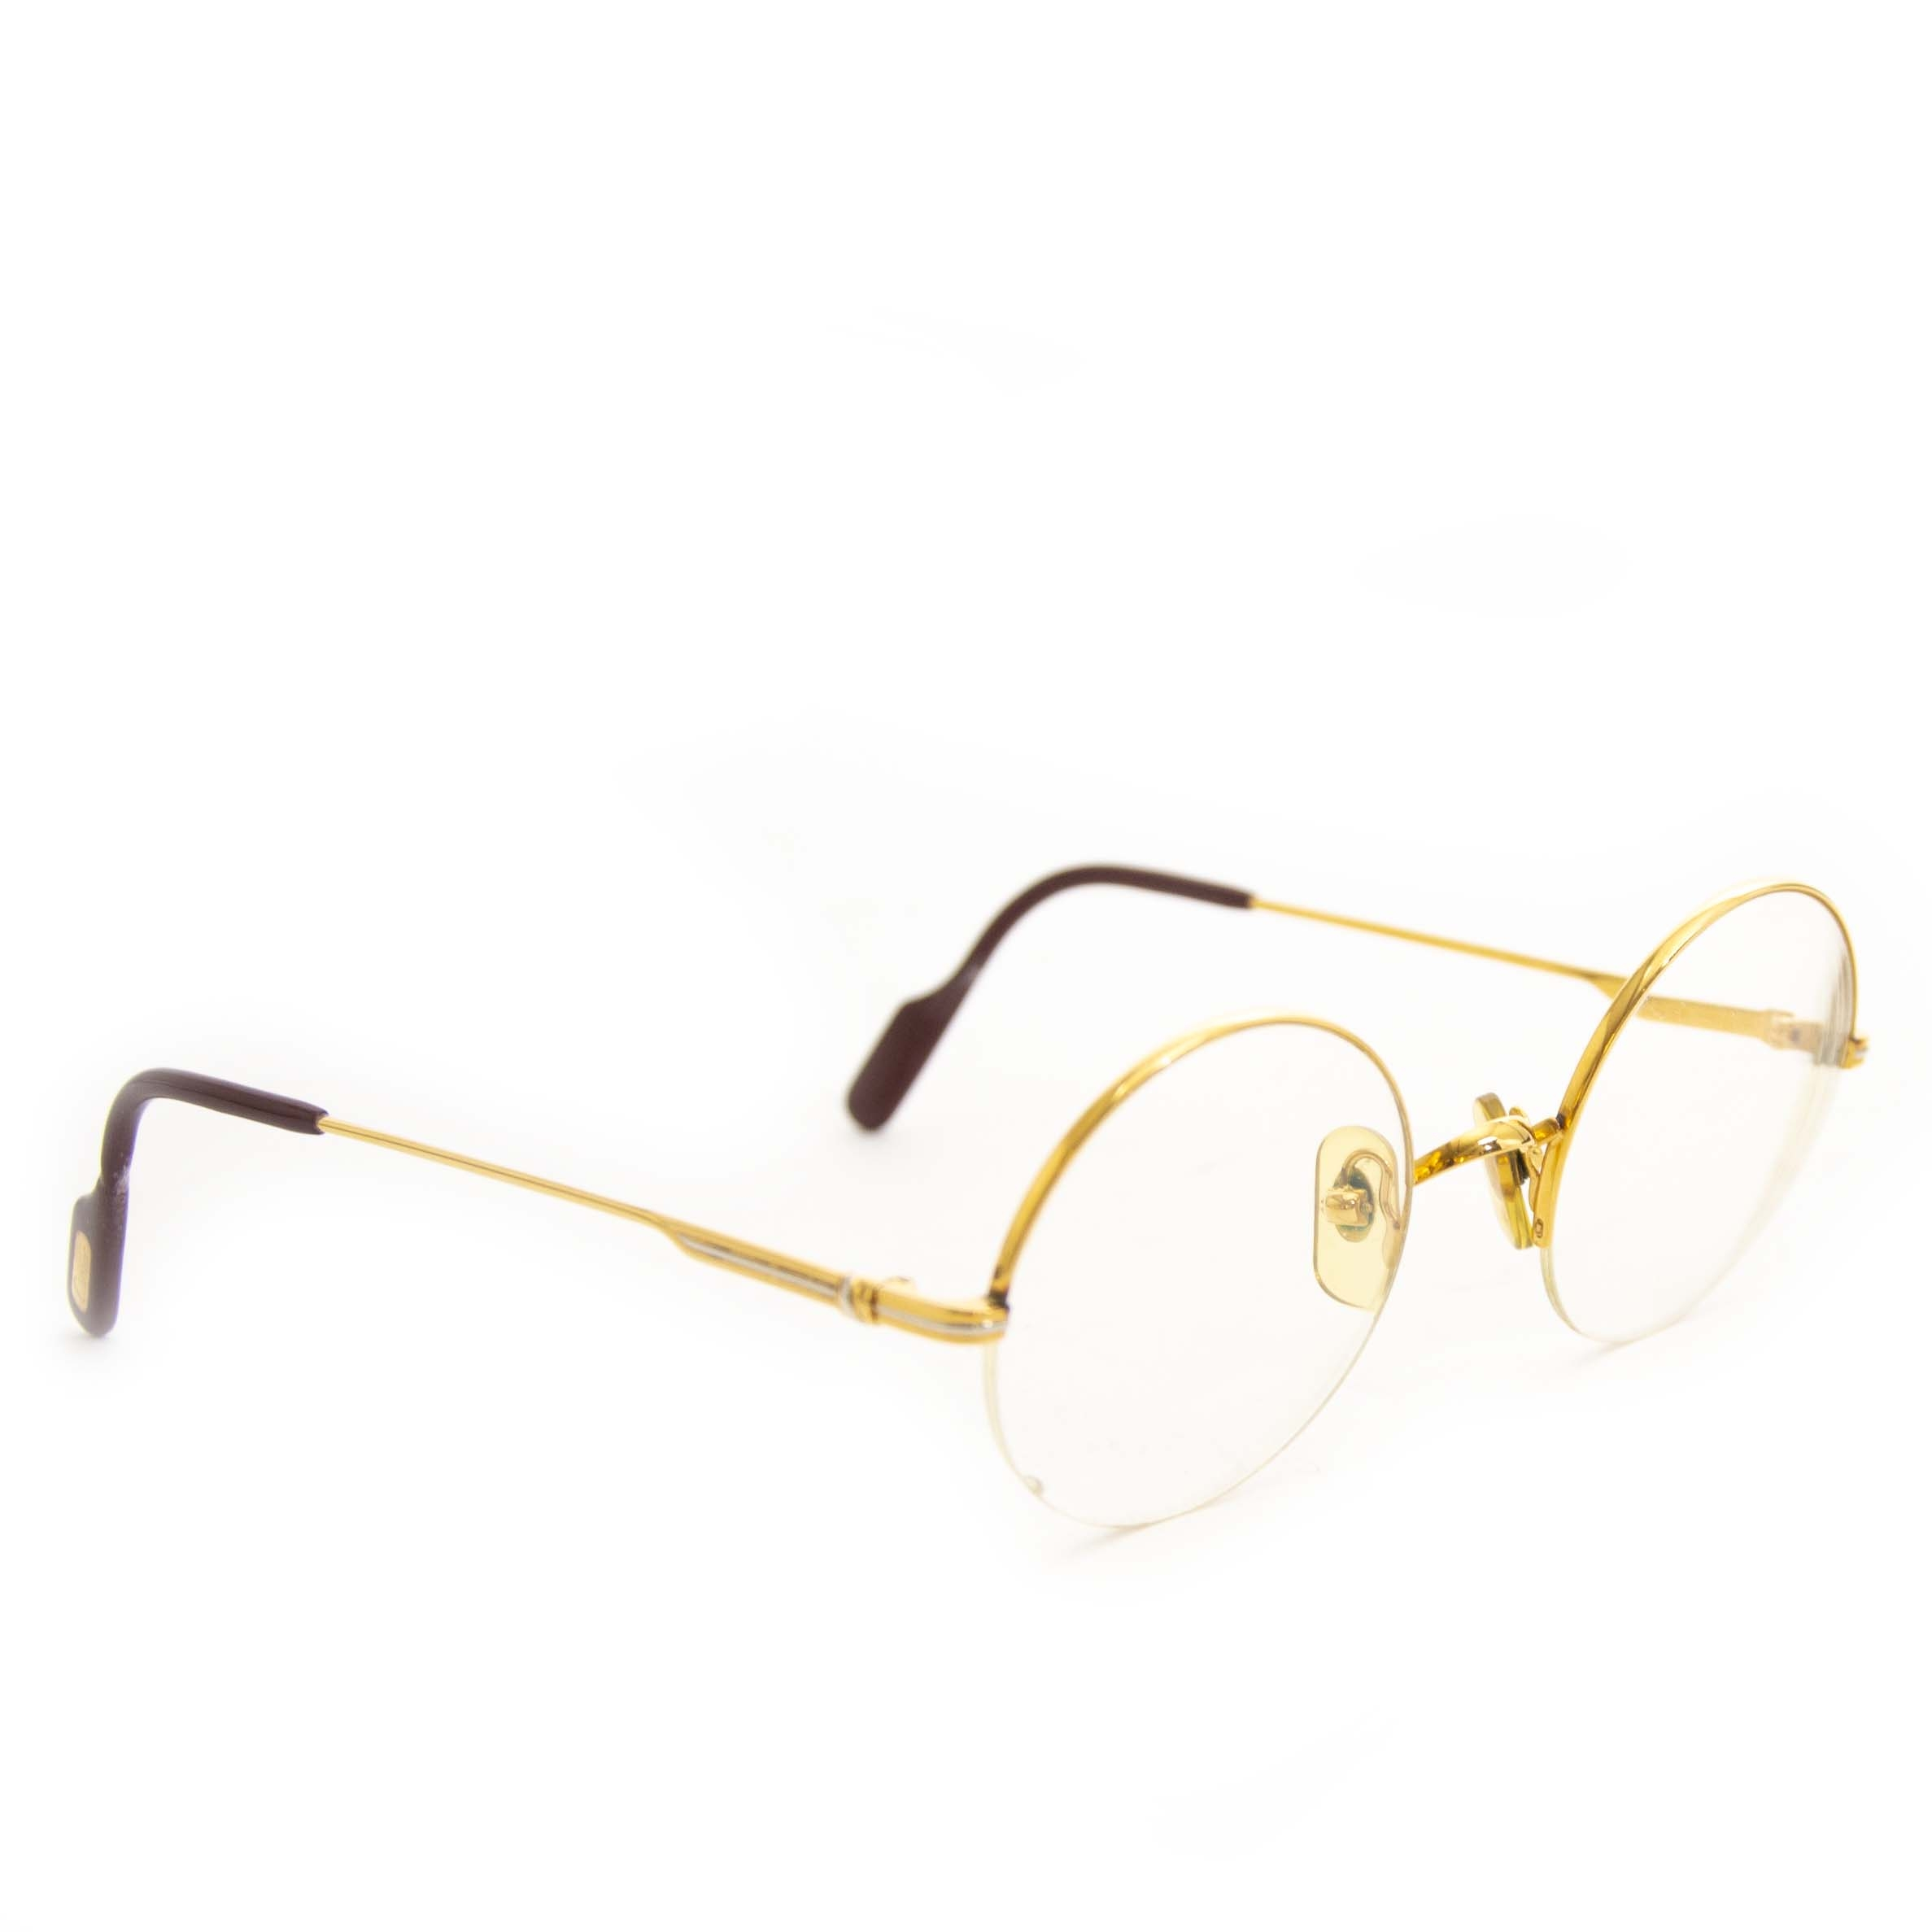 23a11a8860a9 ... Authentic second hand vintage Cartier Mayfair Round Glasses Gold Frame  buy online webshop LabelLOV